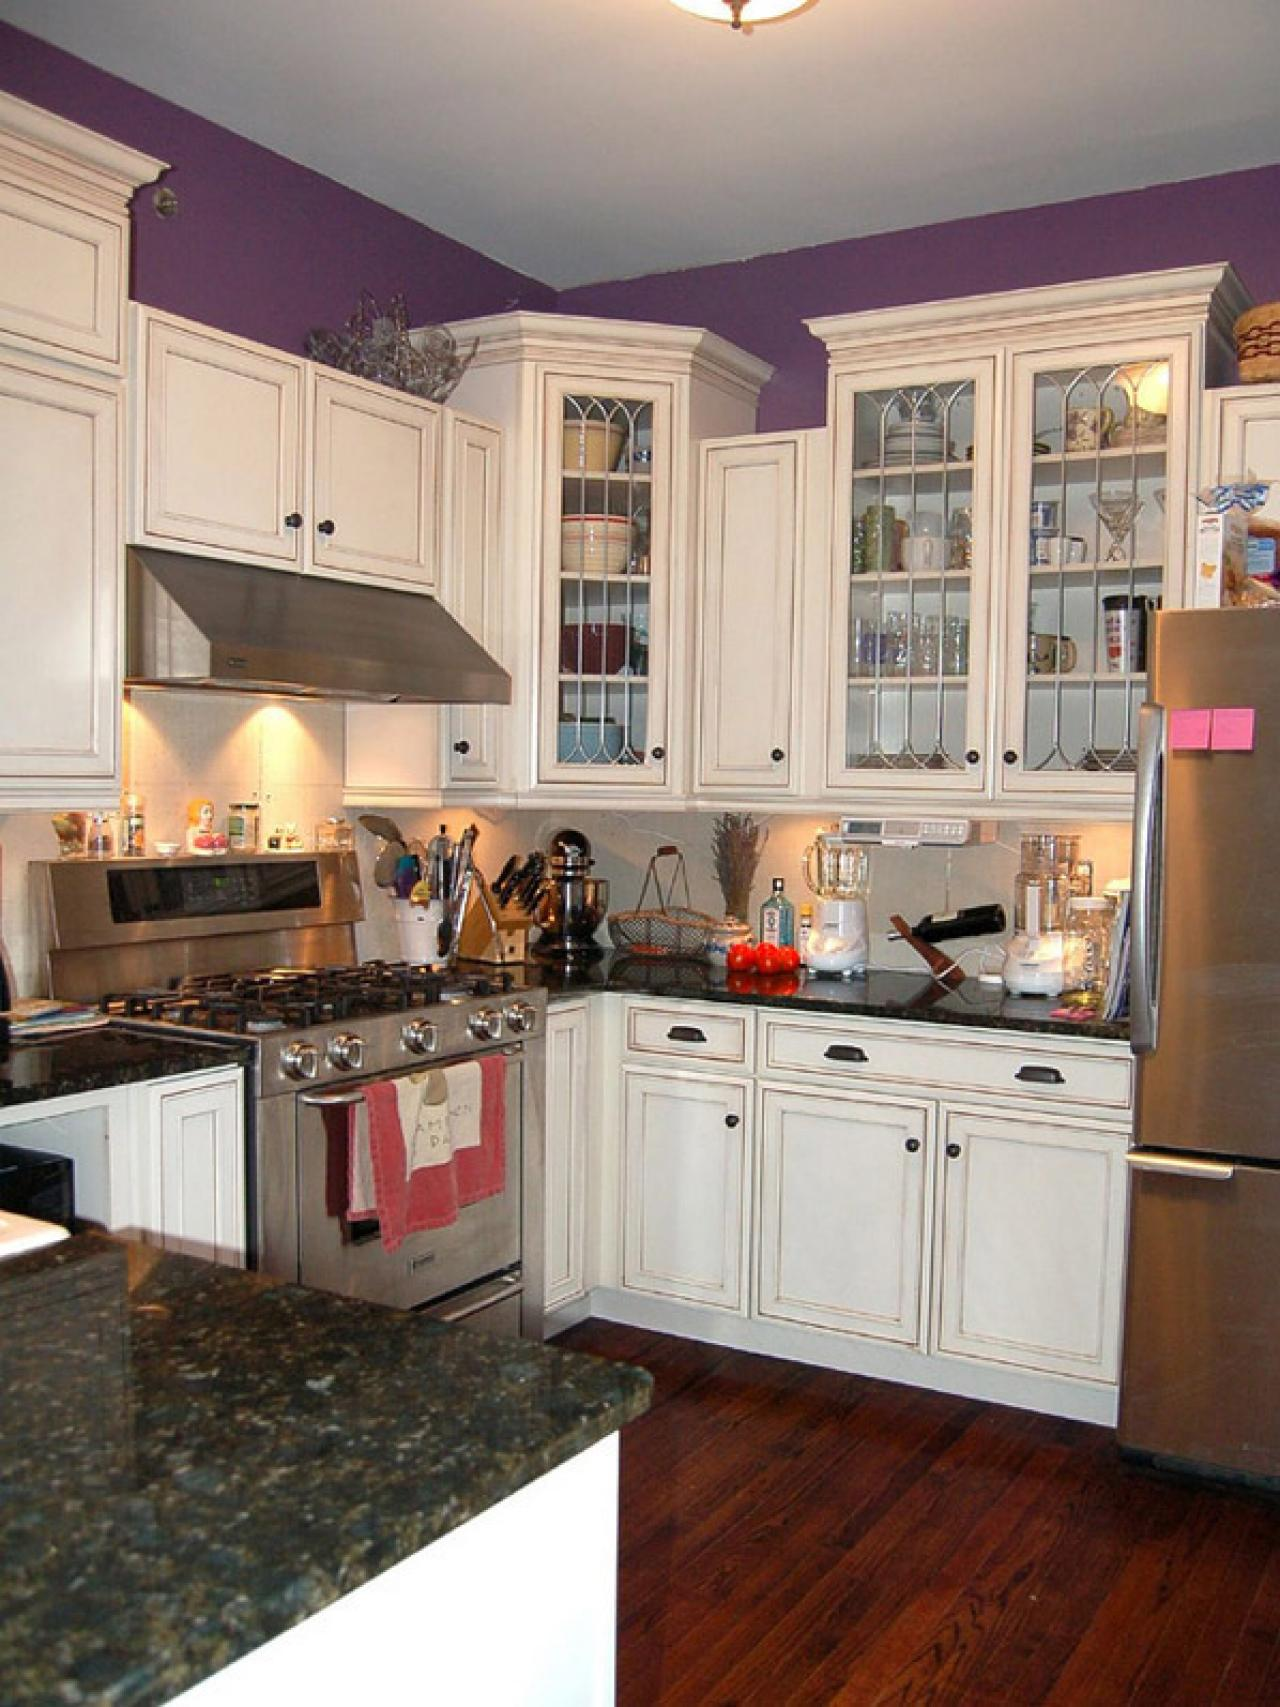 Design Tips For Small Kitchens Glamorous Small Kitchen Seating Ideas Pictures & Tips From Hgtv  Hgtv Decorating Inspiration